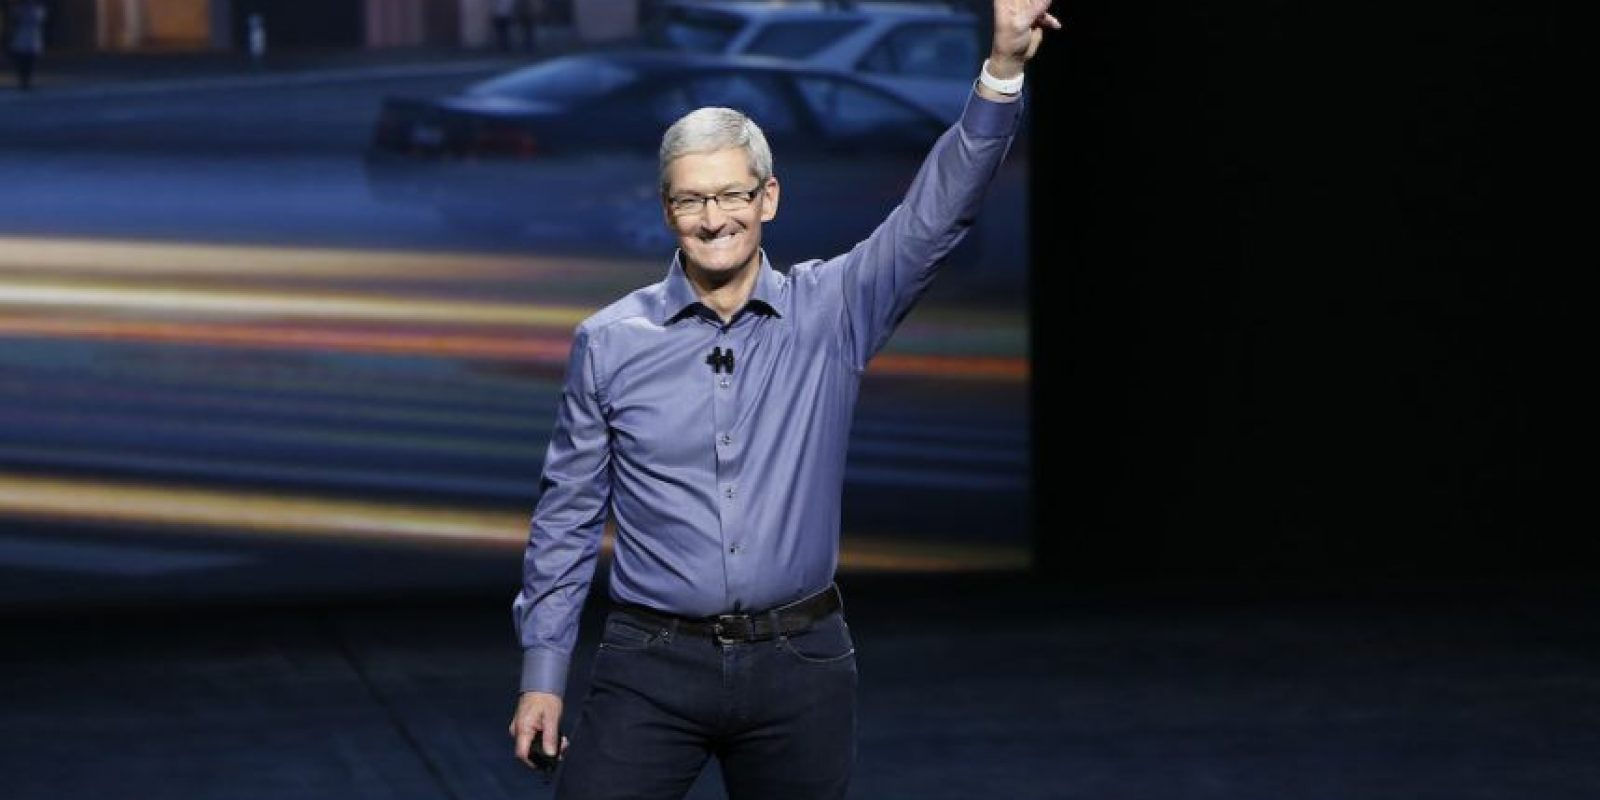 Tim Cook, CEO de Apple, estuvo en el Bill Graham Civic Auditorium. Foto: Getty Images